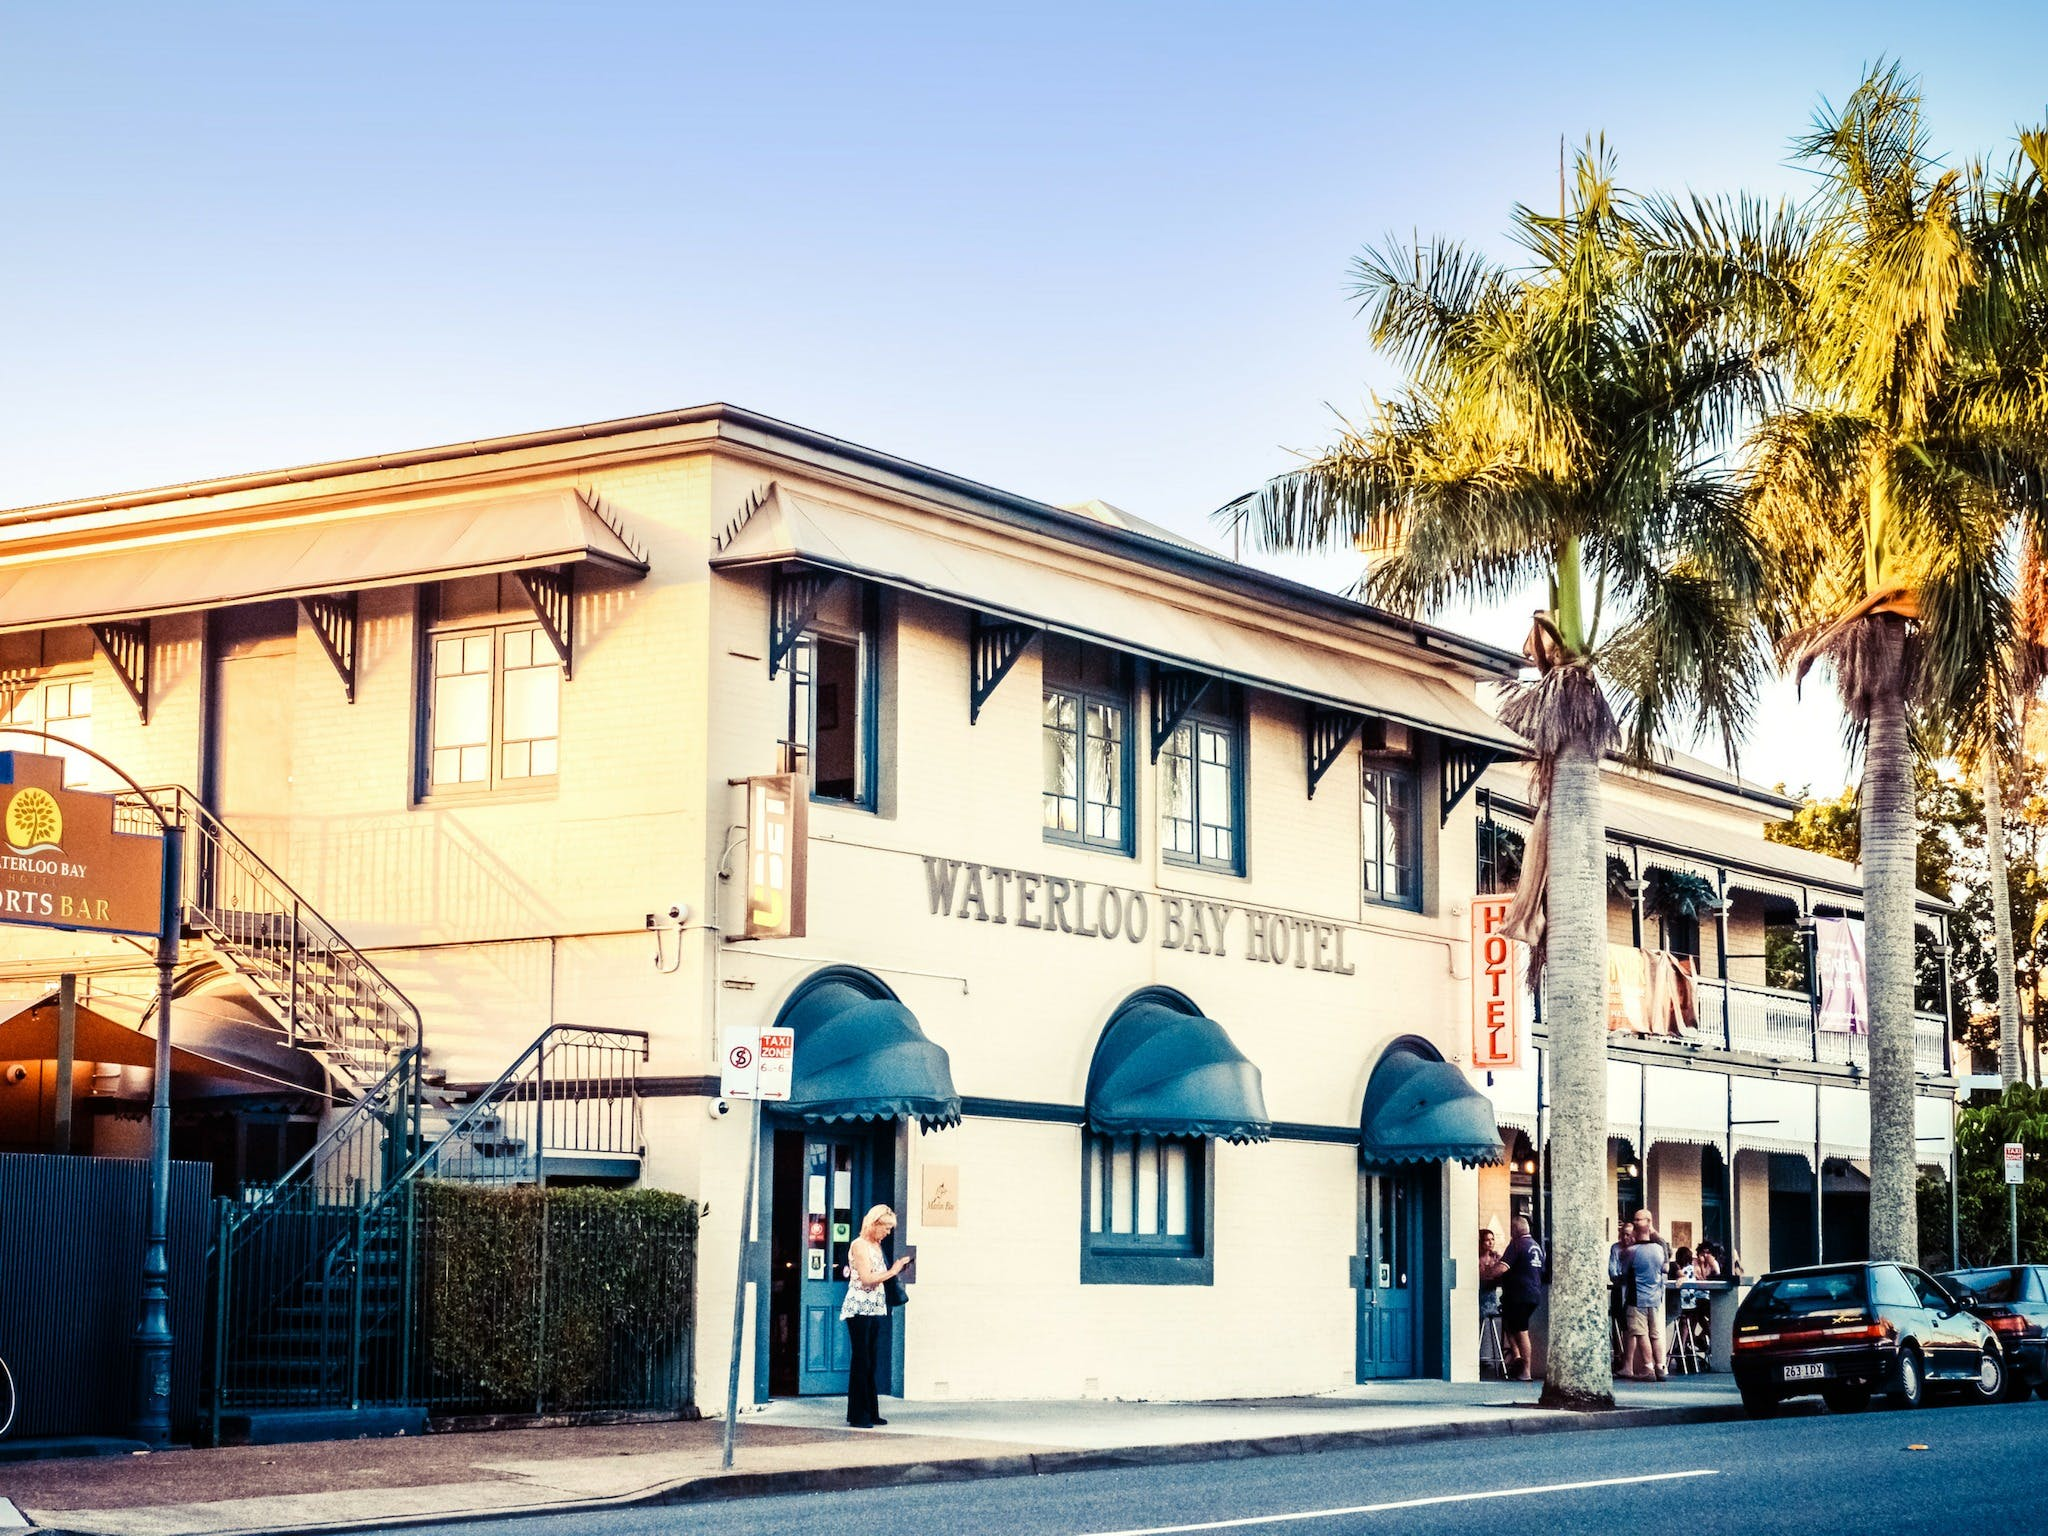 The Waterloo Bay Hotel - WA Accommodation